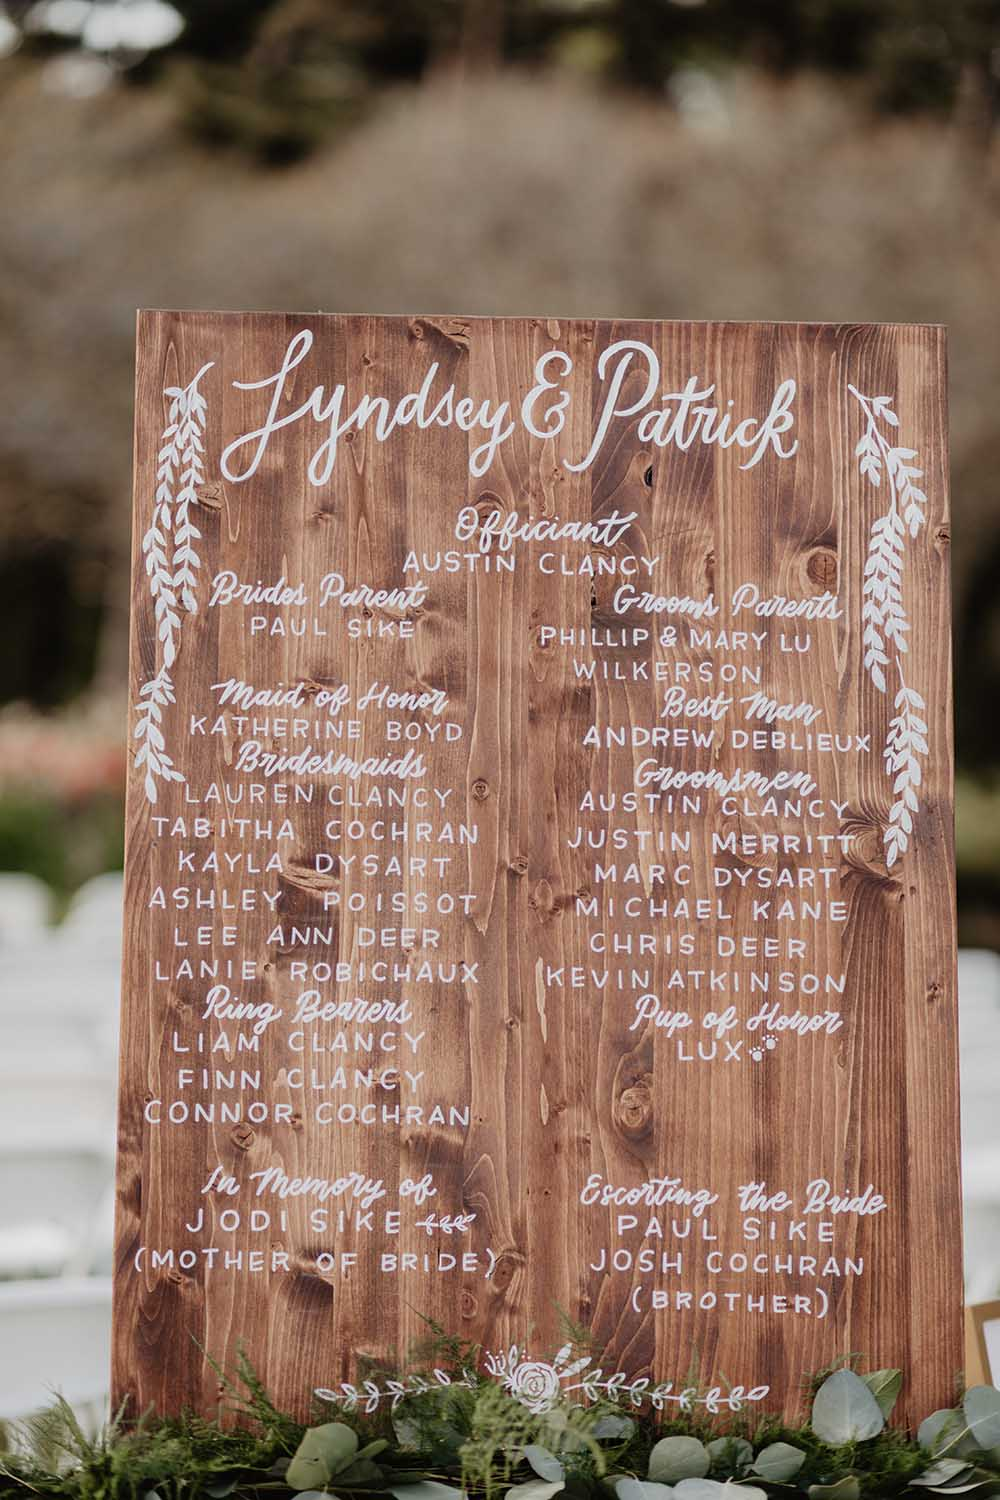 Wooden Wedding Party Sign | photo by Emily Green Photography | featured on I Do Y'all